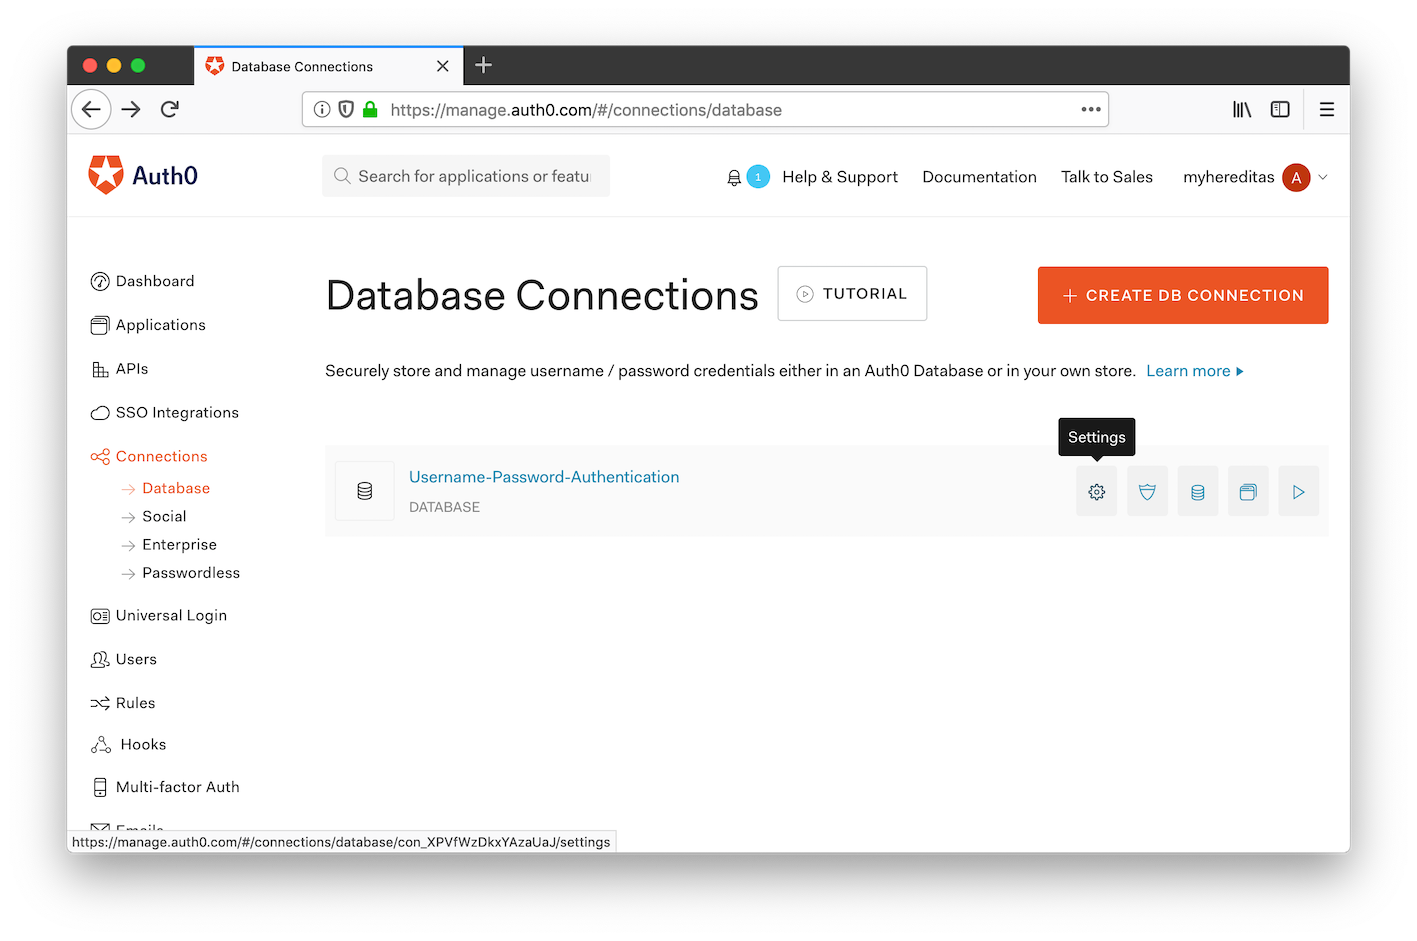 Auth0 management portal: database